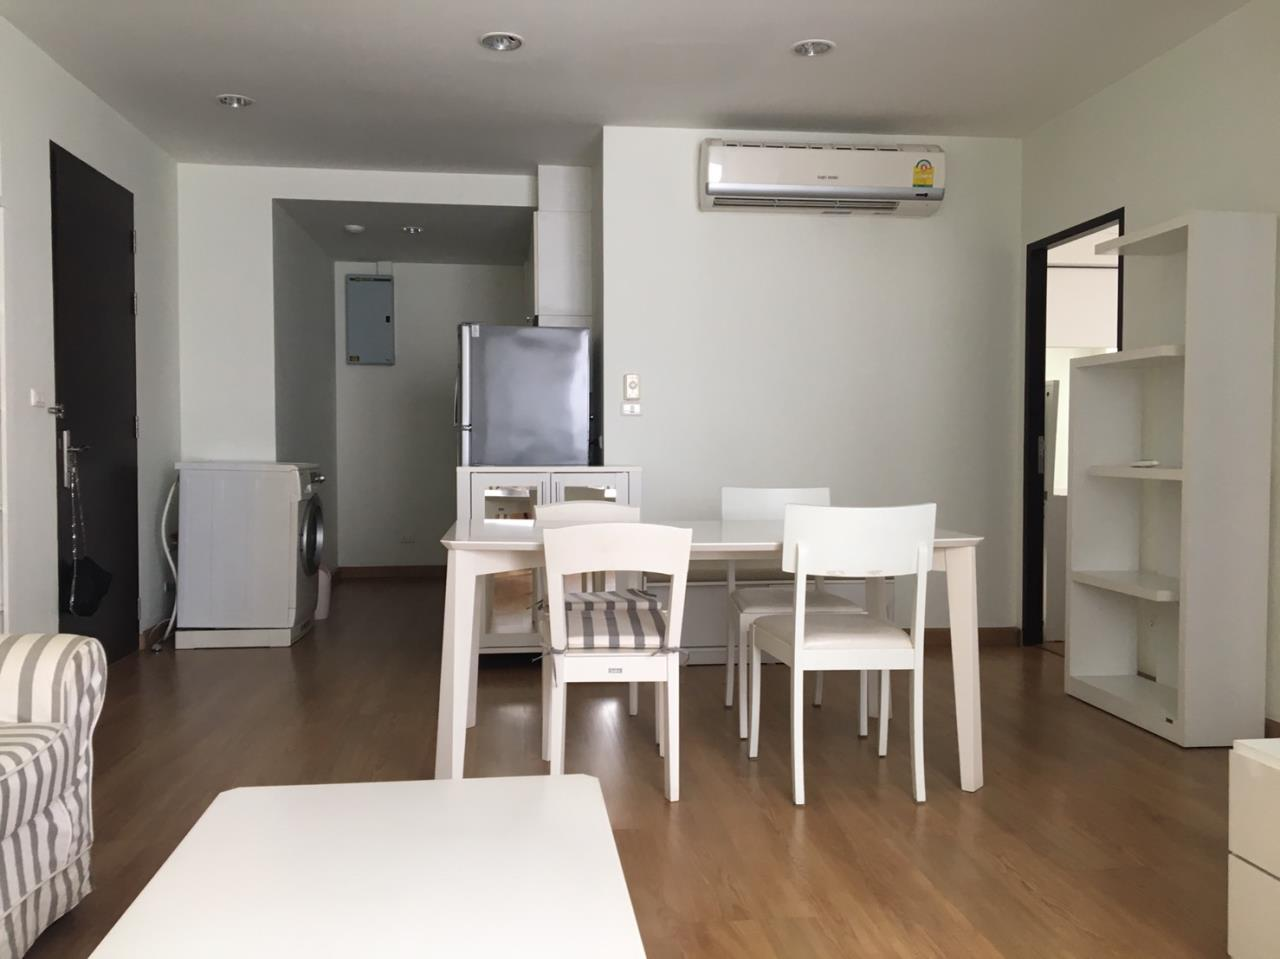 Piri Property Agency's 2 bedrooms Condominium  on 5 Tower A floor For Rent 2 8